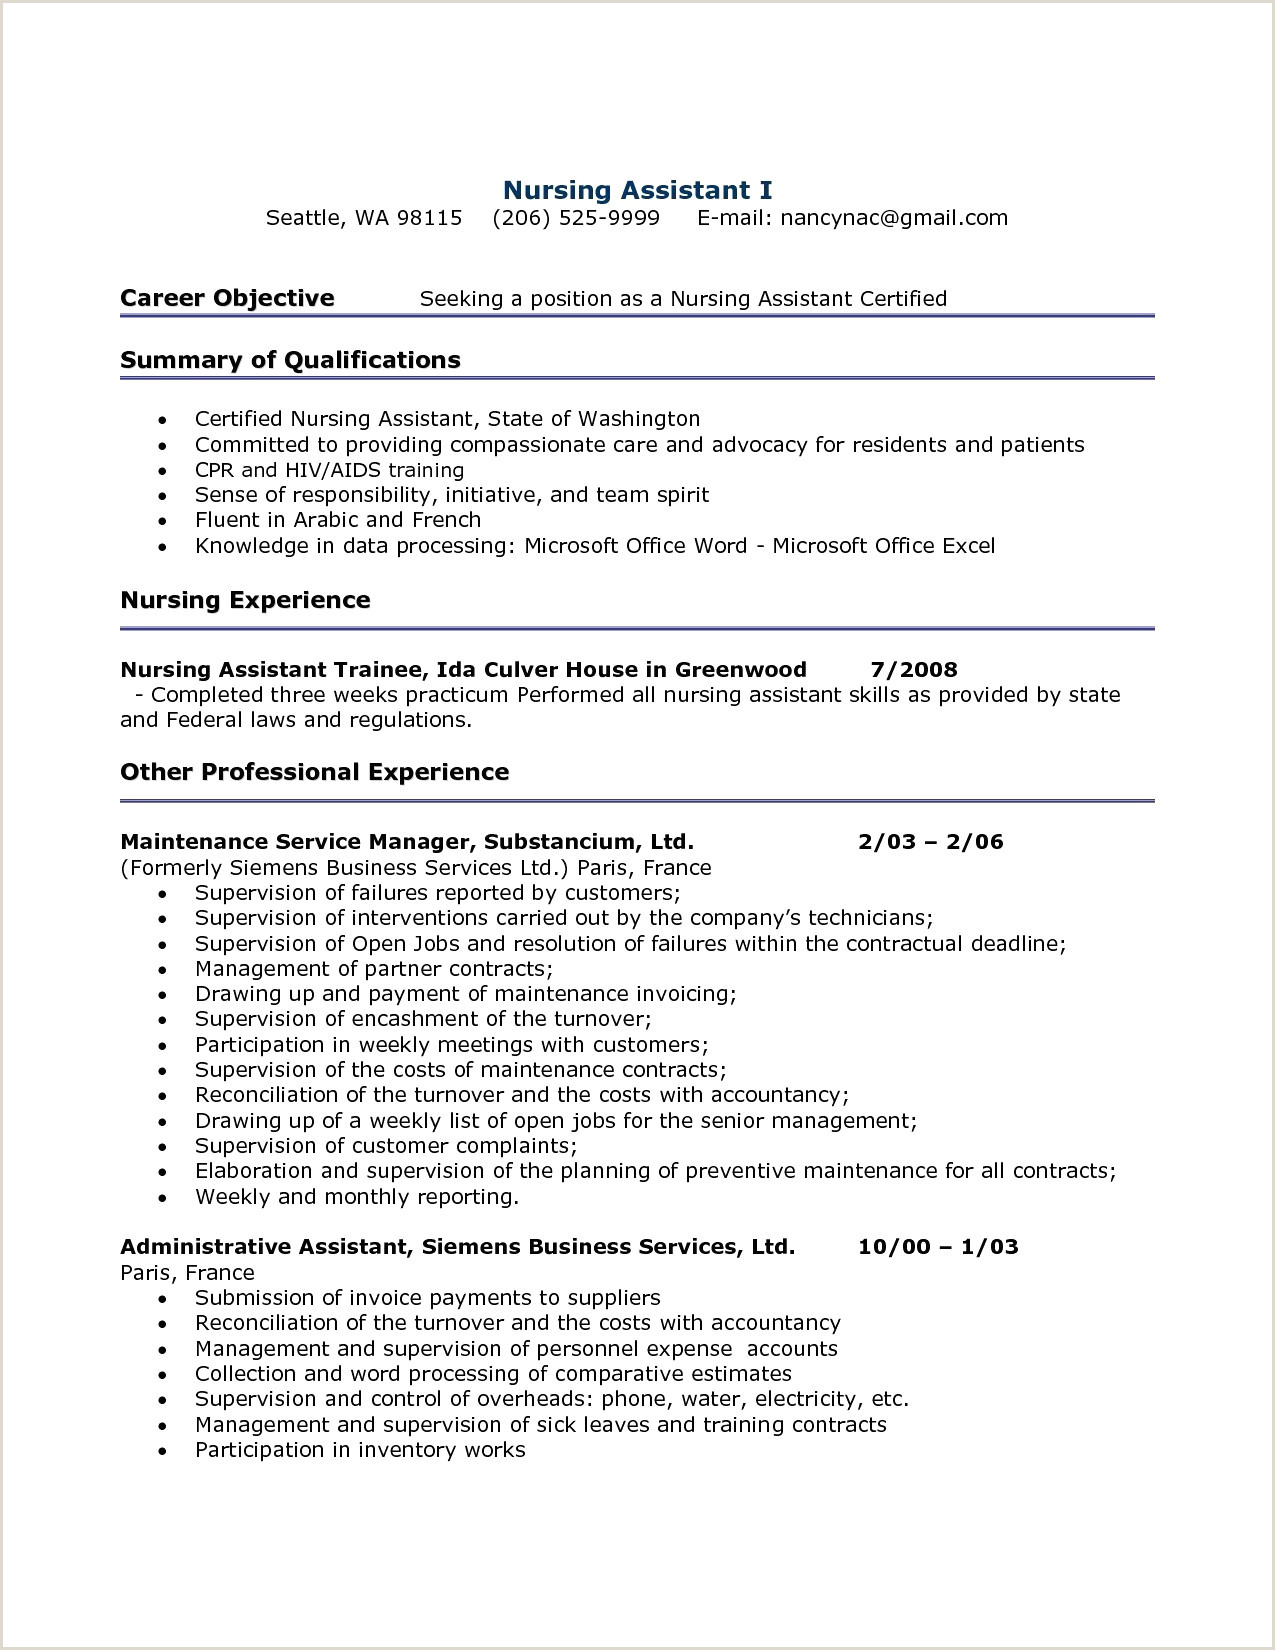 Hairstylist Resume Templates Cv Designer Gratuit Exemple Hair Stylist Resume Example